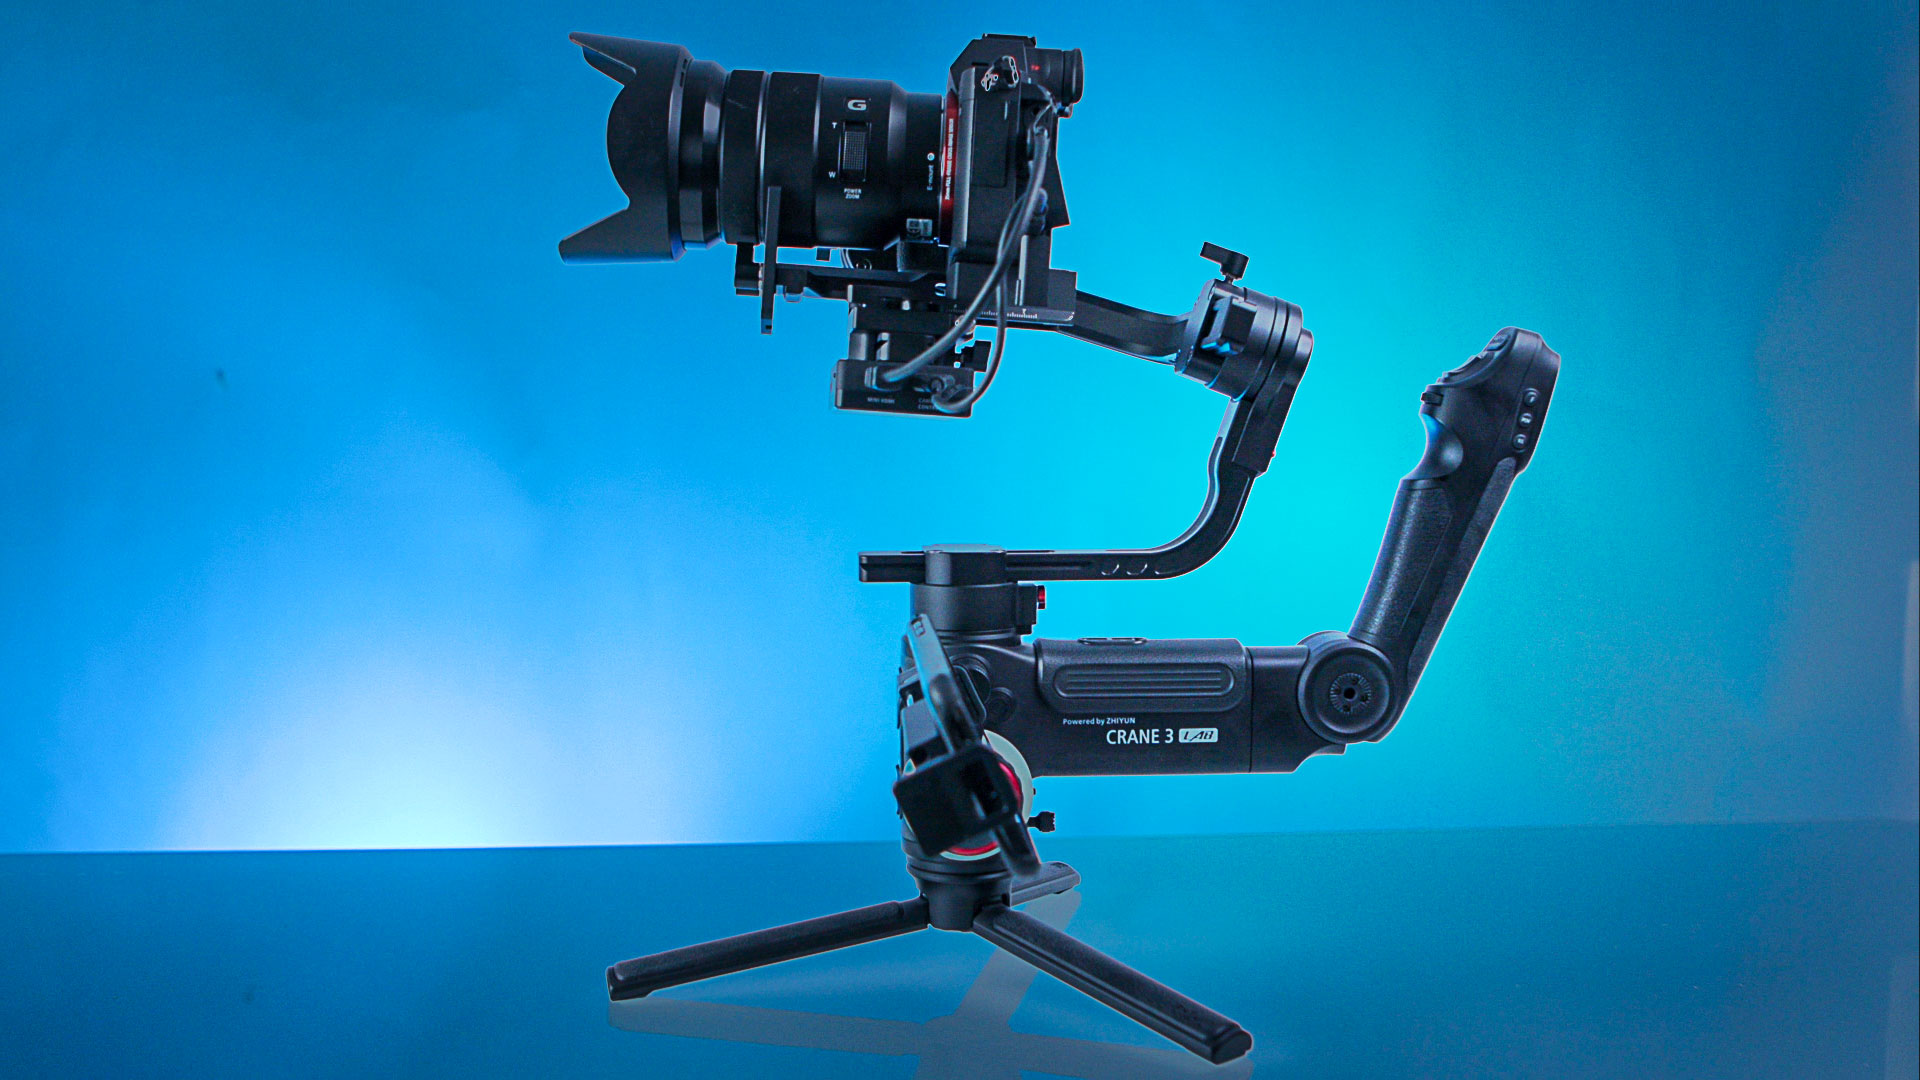 ZHIYUN Crane 3 LAB camera Stabilizer  The comprehensive